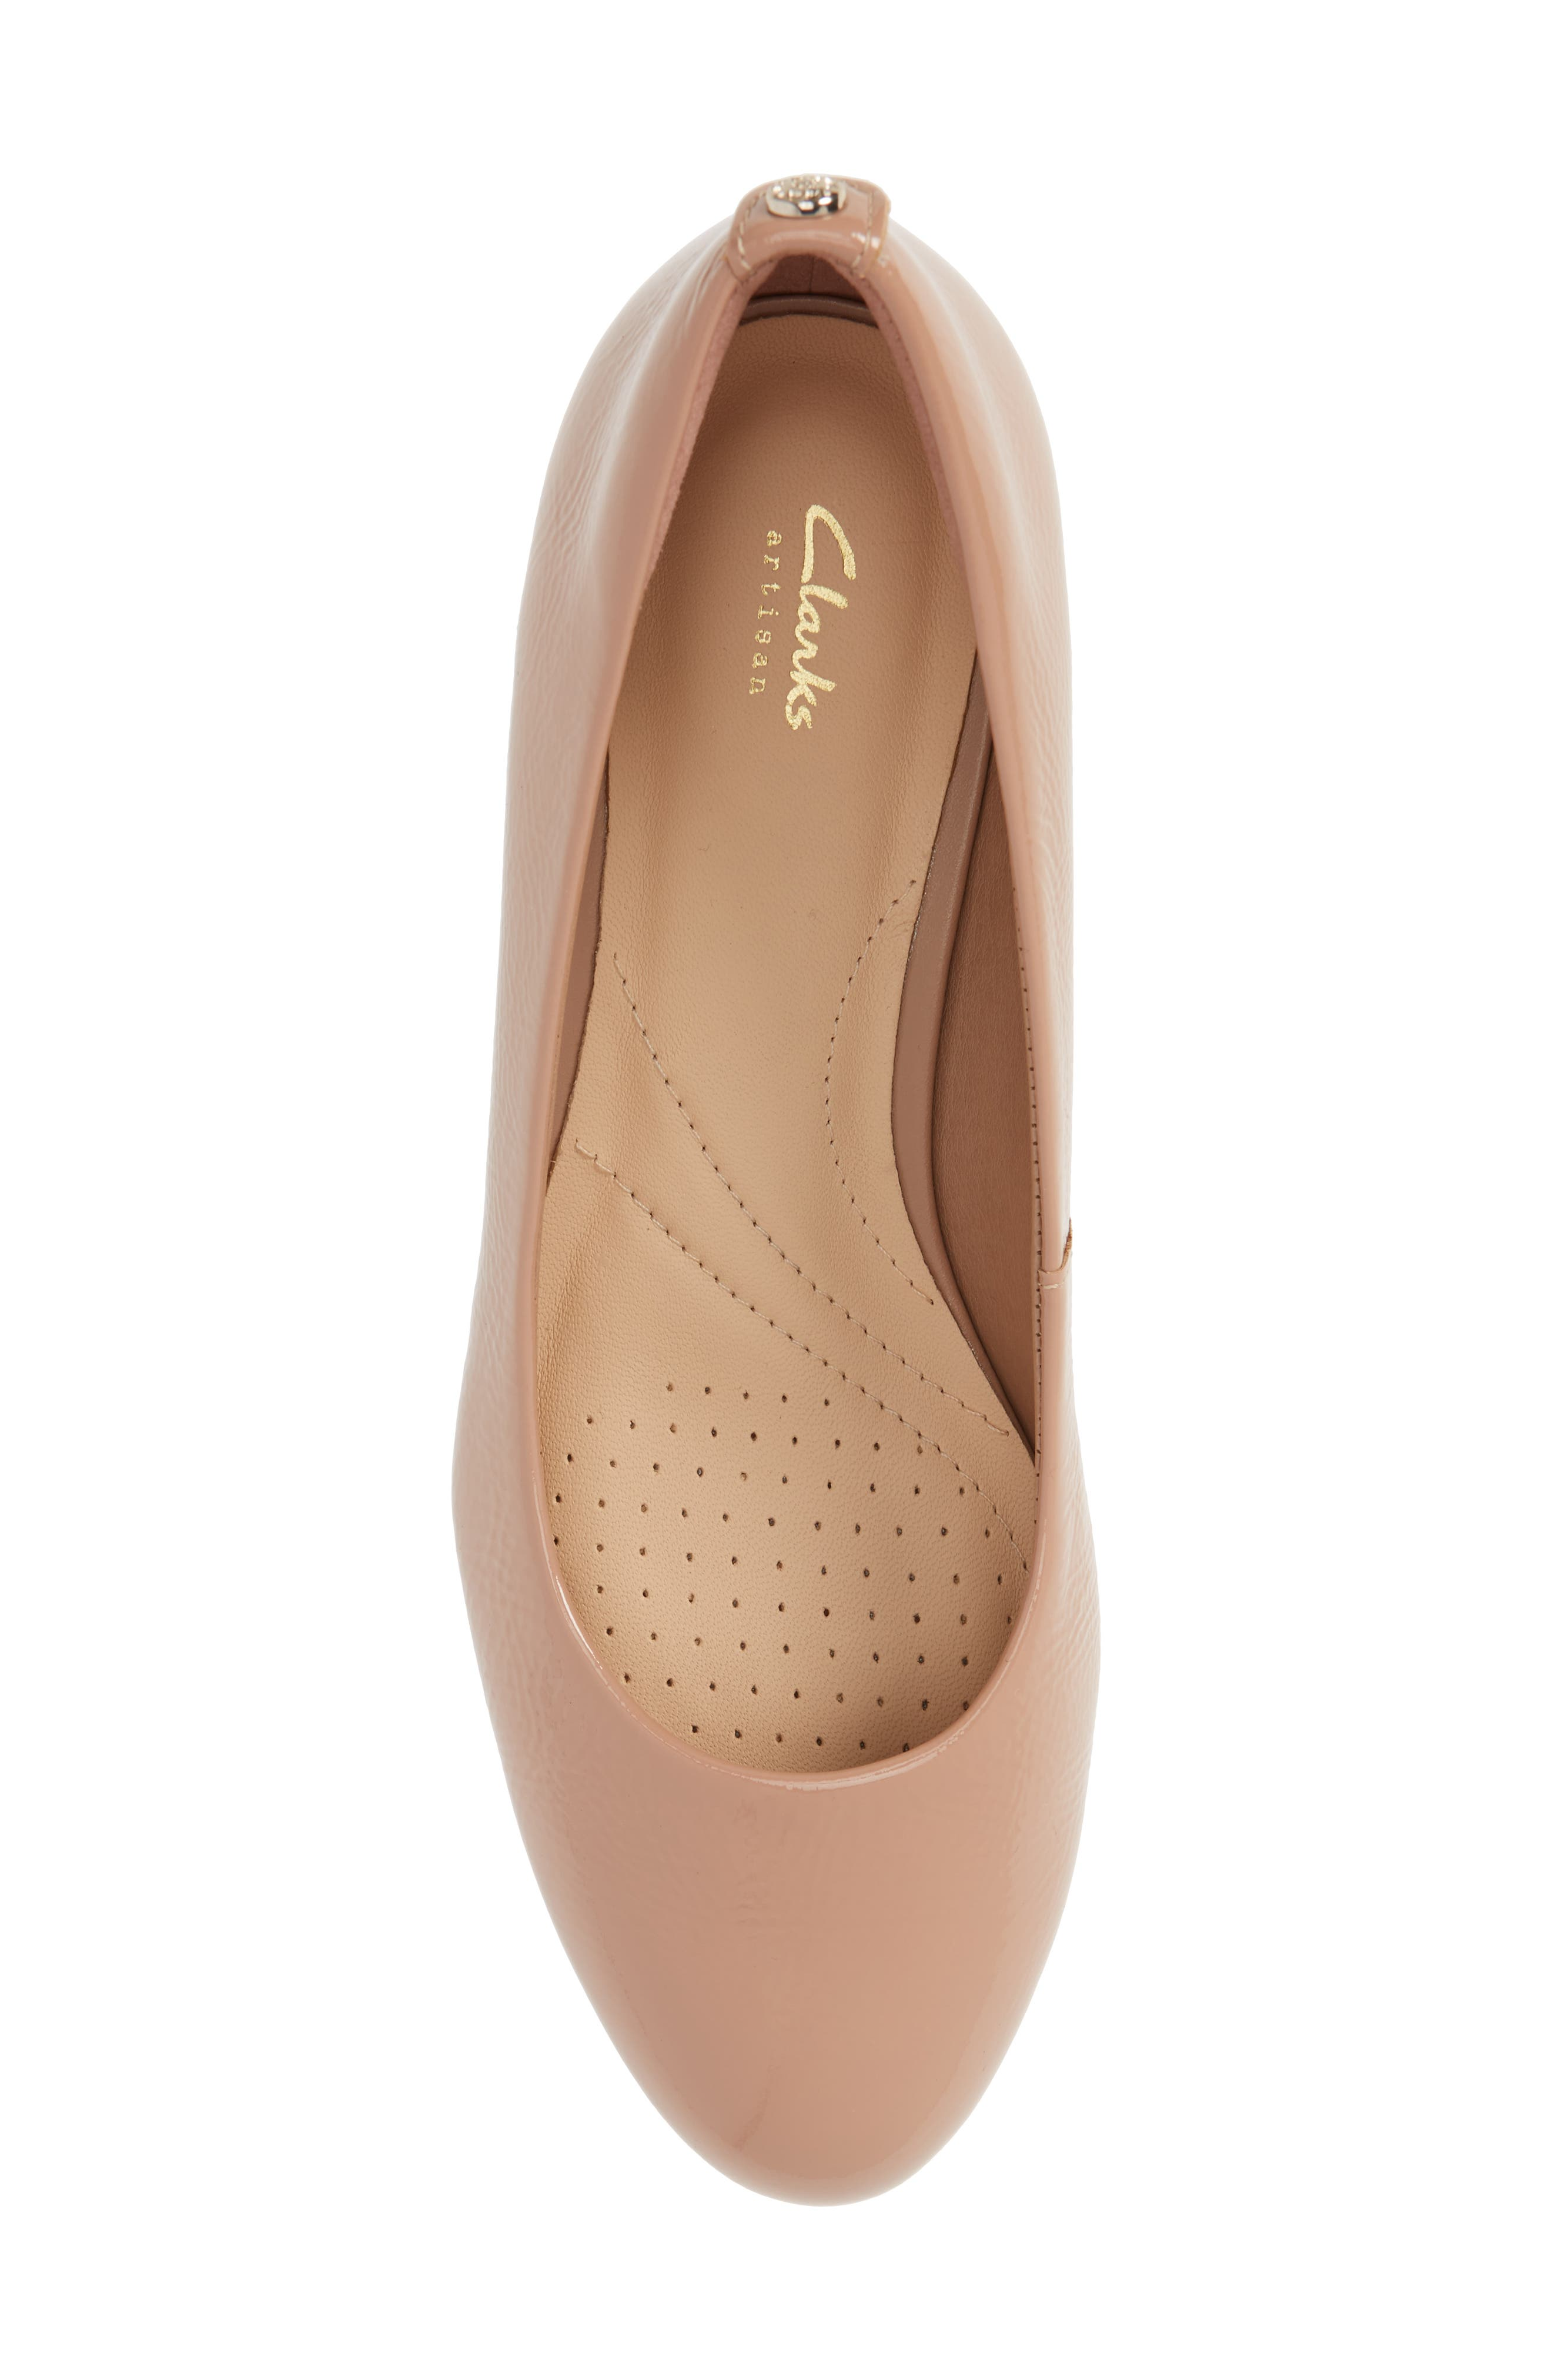 Vendra Bloom Wedge Pump,                             Alternate thumbnail 5, color,                             Beige Patent Leather